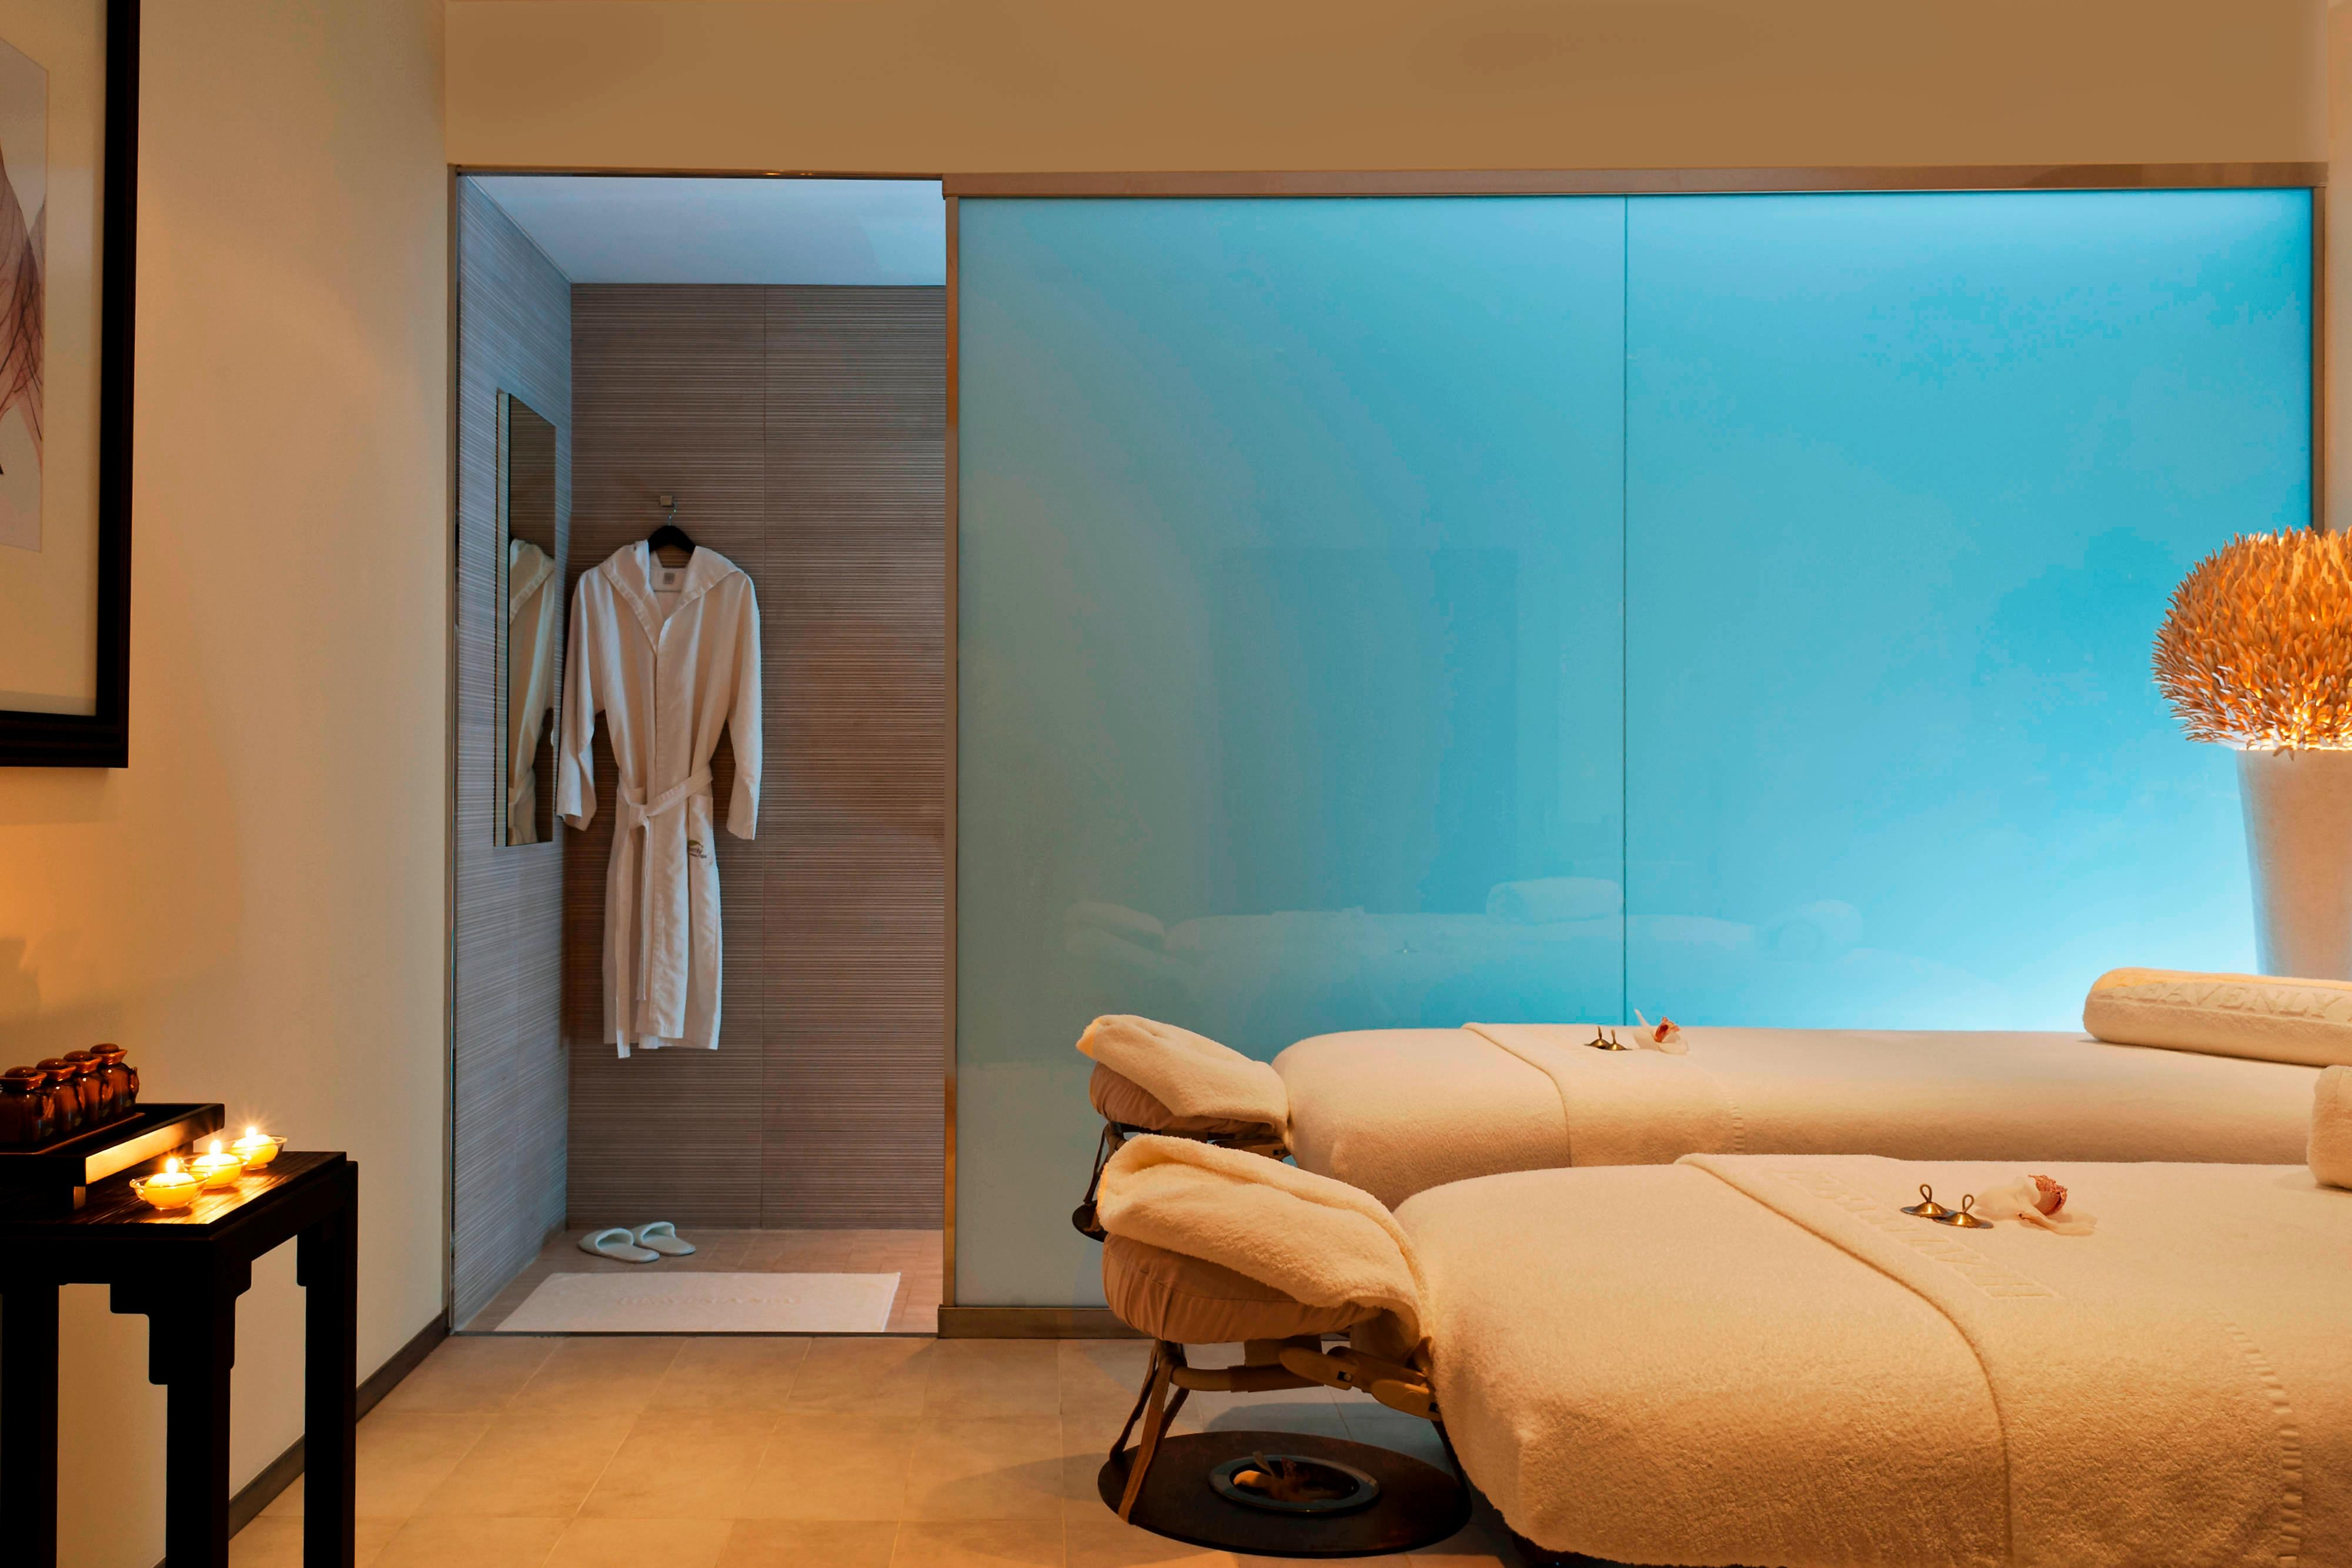 Heavenly Spa - Couples Treatment Room